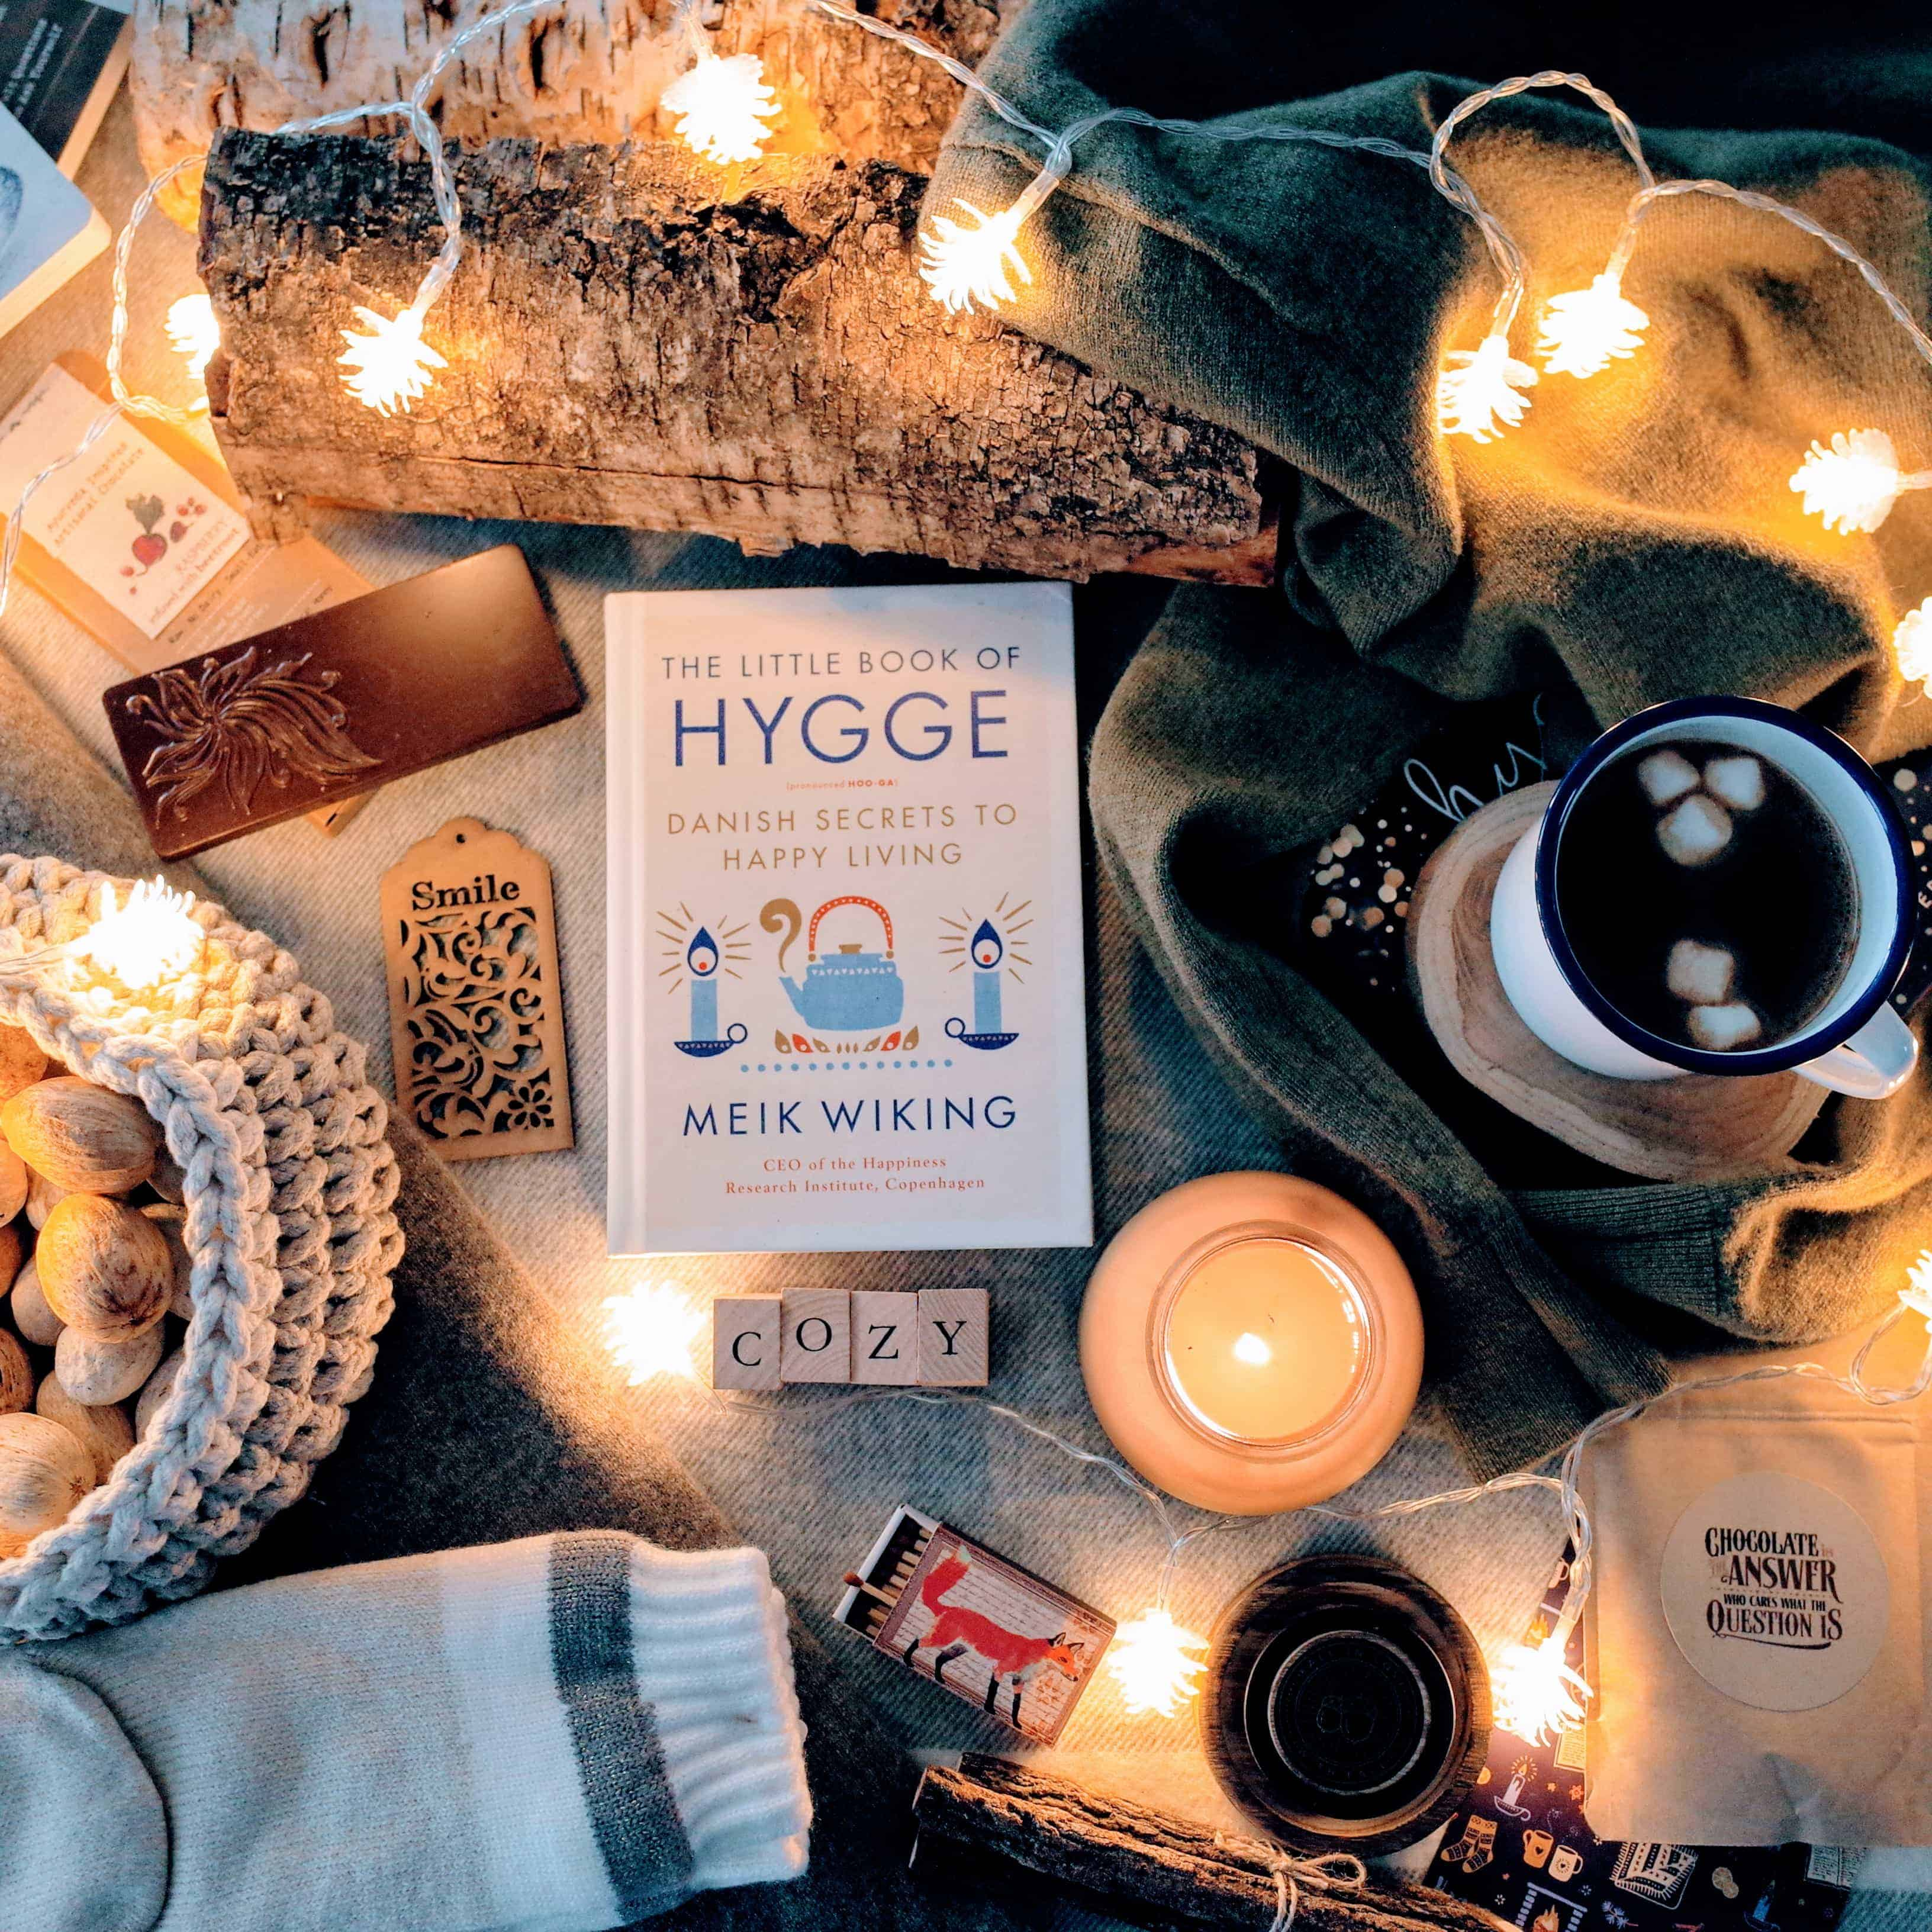 Hygge Box lifestyle subscriptions gift idea